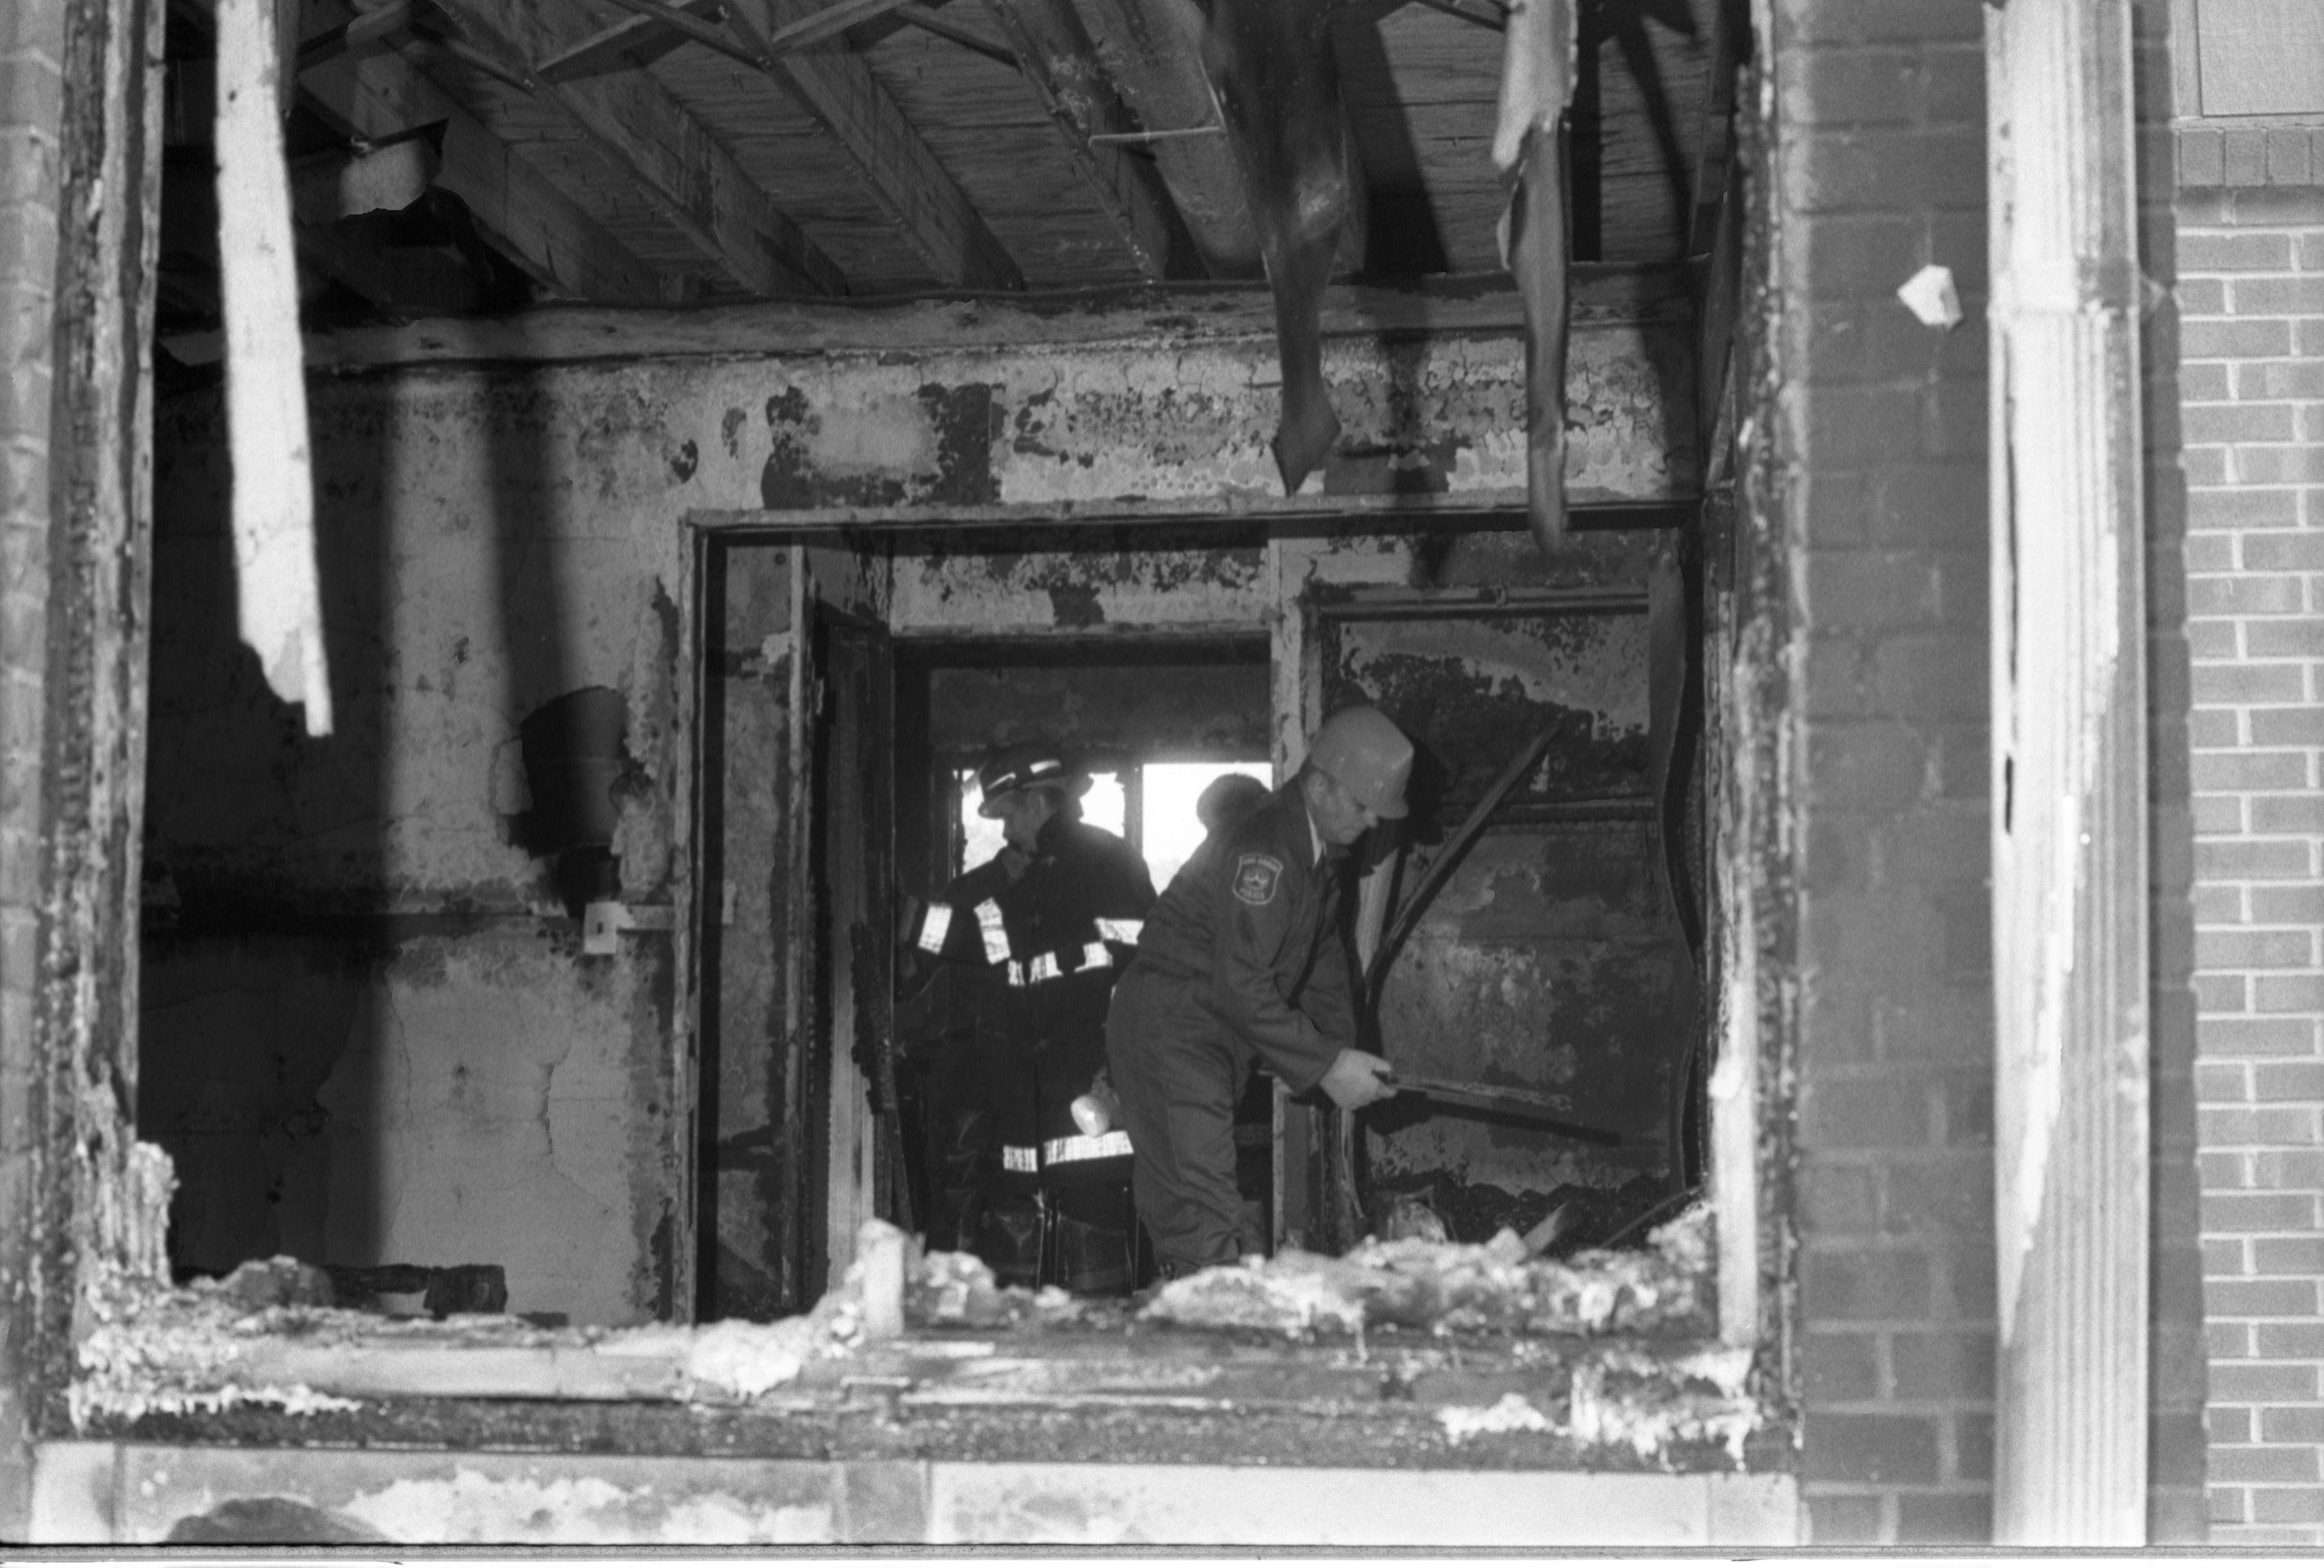 Firefighters Go Through Remains After Fire At The Hikone Court Townhomes, September 24, 1986 image